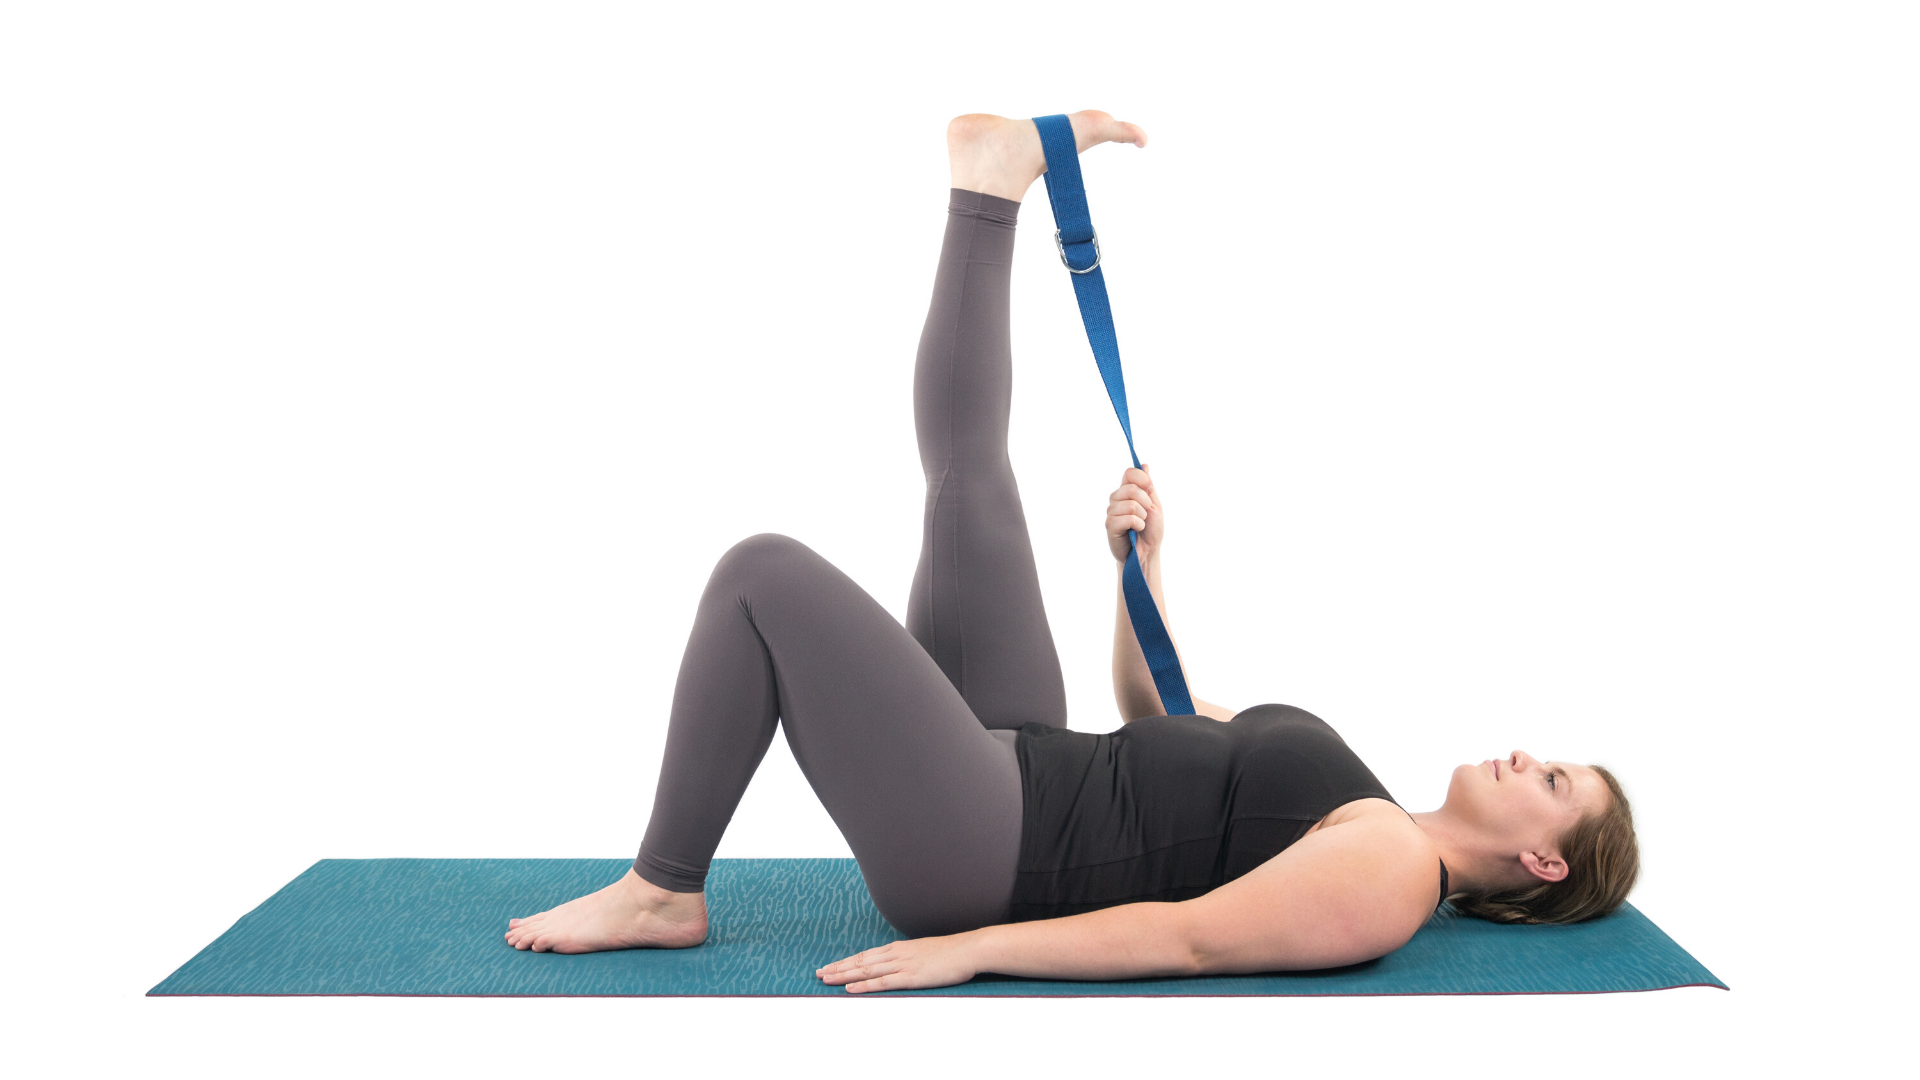 Woman practicing supta padangusthasana hamstring stretch pose.